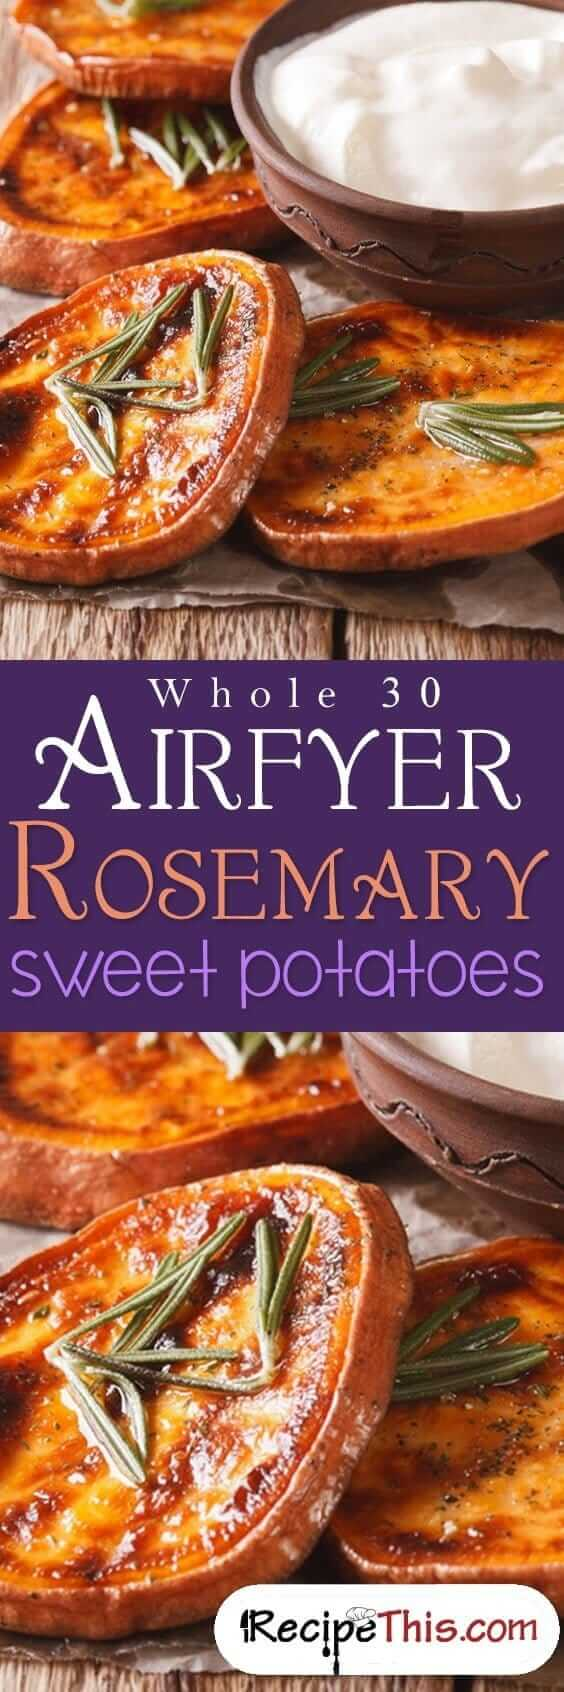 Whole 30 Airfryer Rosemary Sweet Potatoes